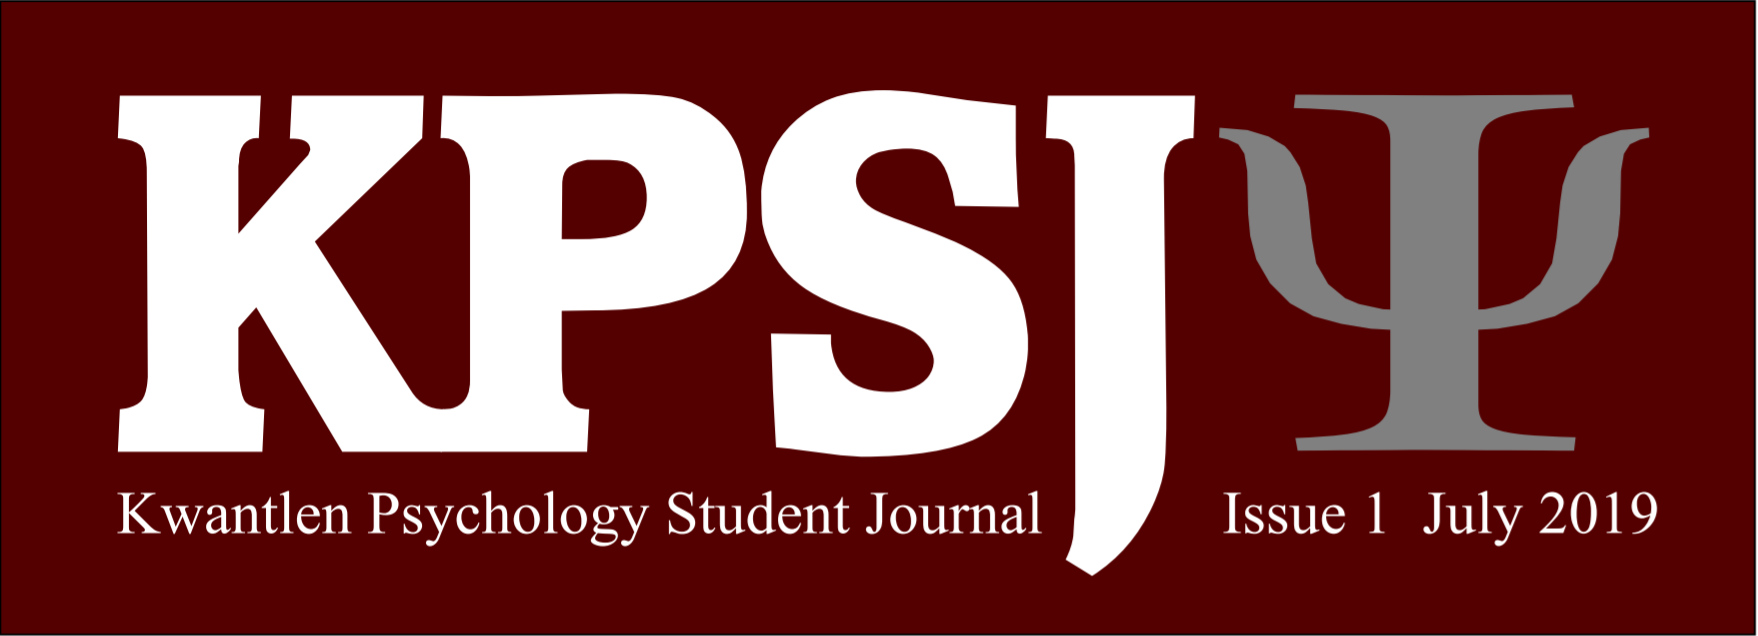 KPSJ, Kwantlen Psychology Student Journal, Issue 1, July 2019